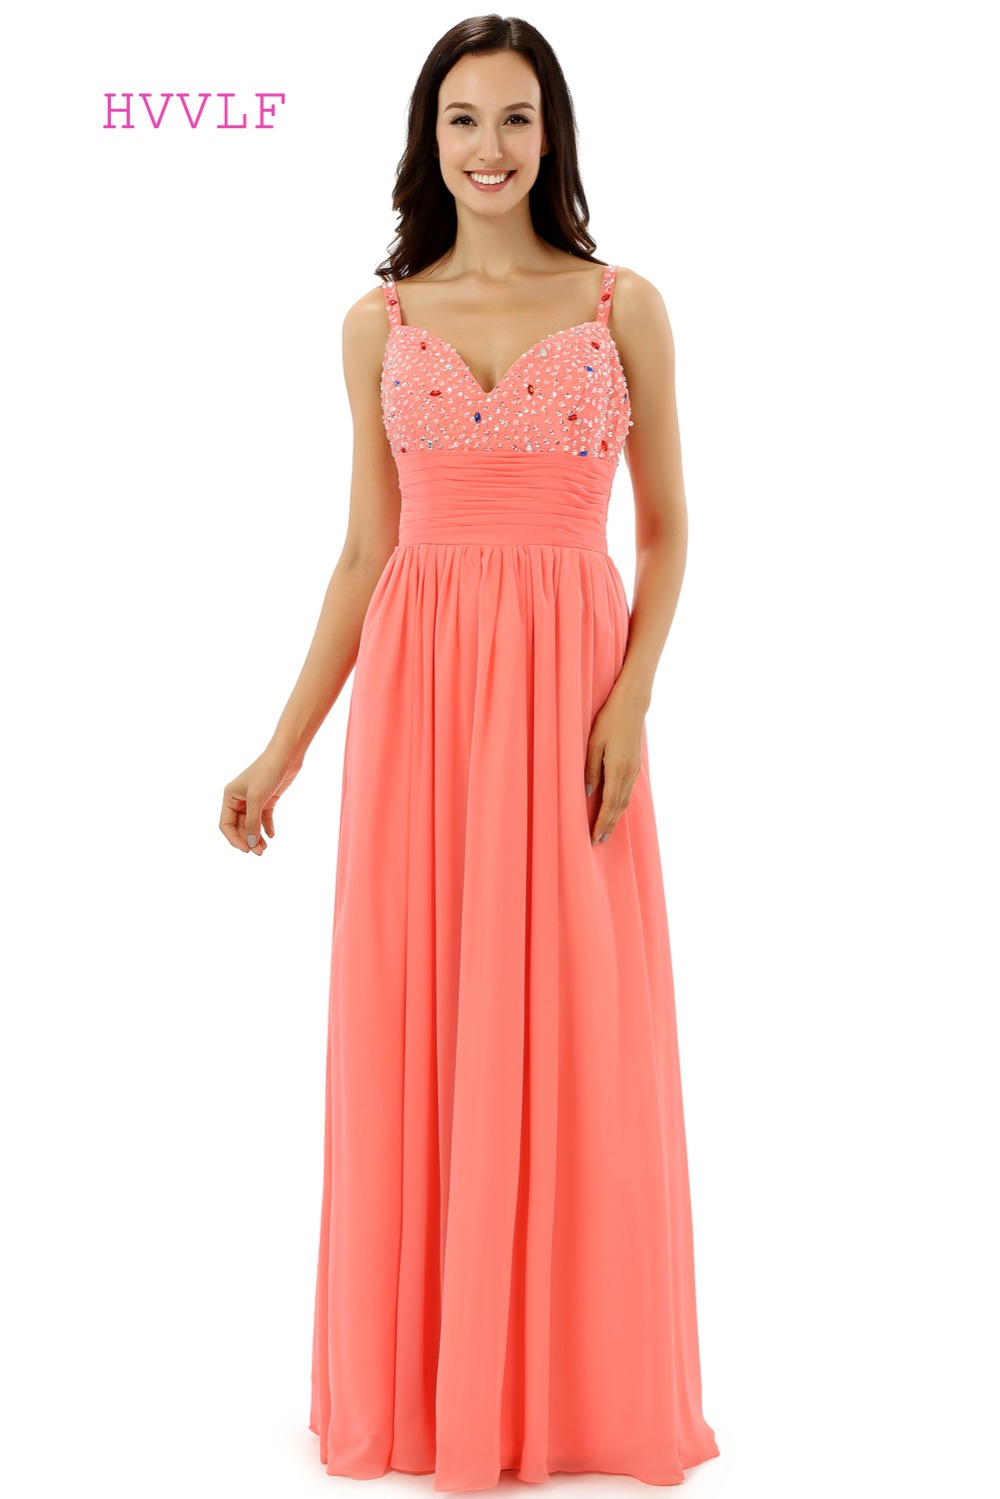 Coral Robe De Soiree 2019 A-line Spaghetti Straps Chiffon Beaded Crysals Women Long   Prom     Dresses     Prom   Gown Evening   Dress